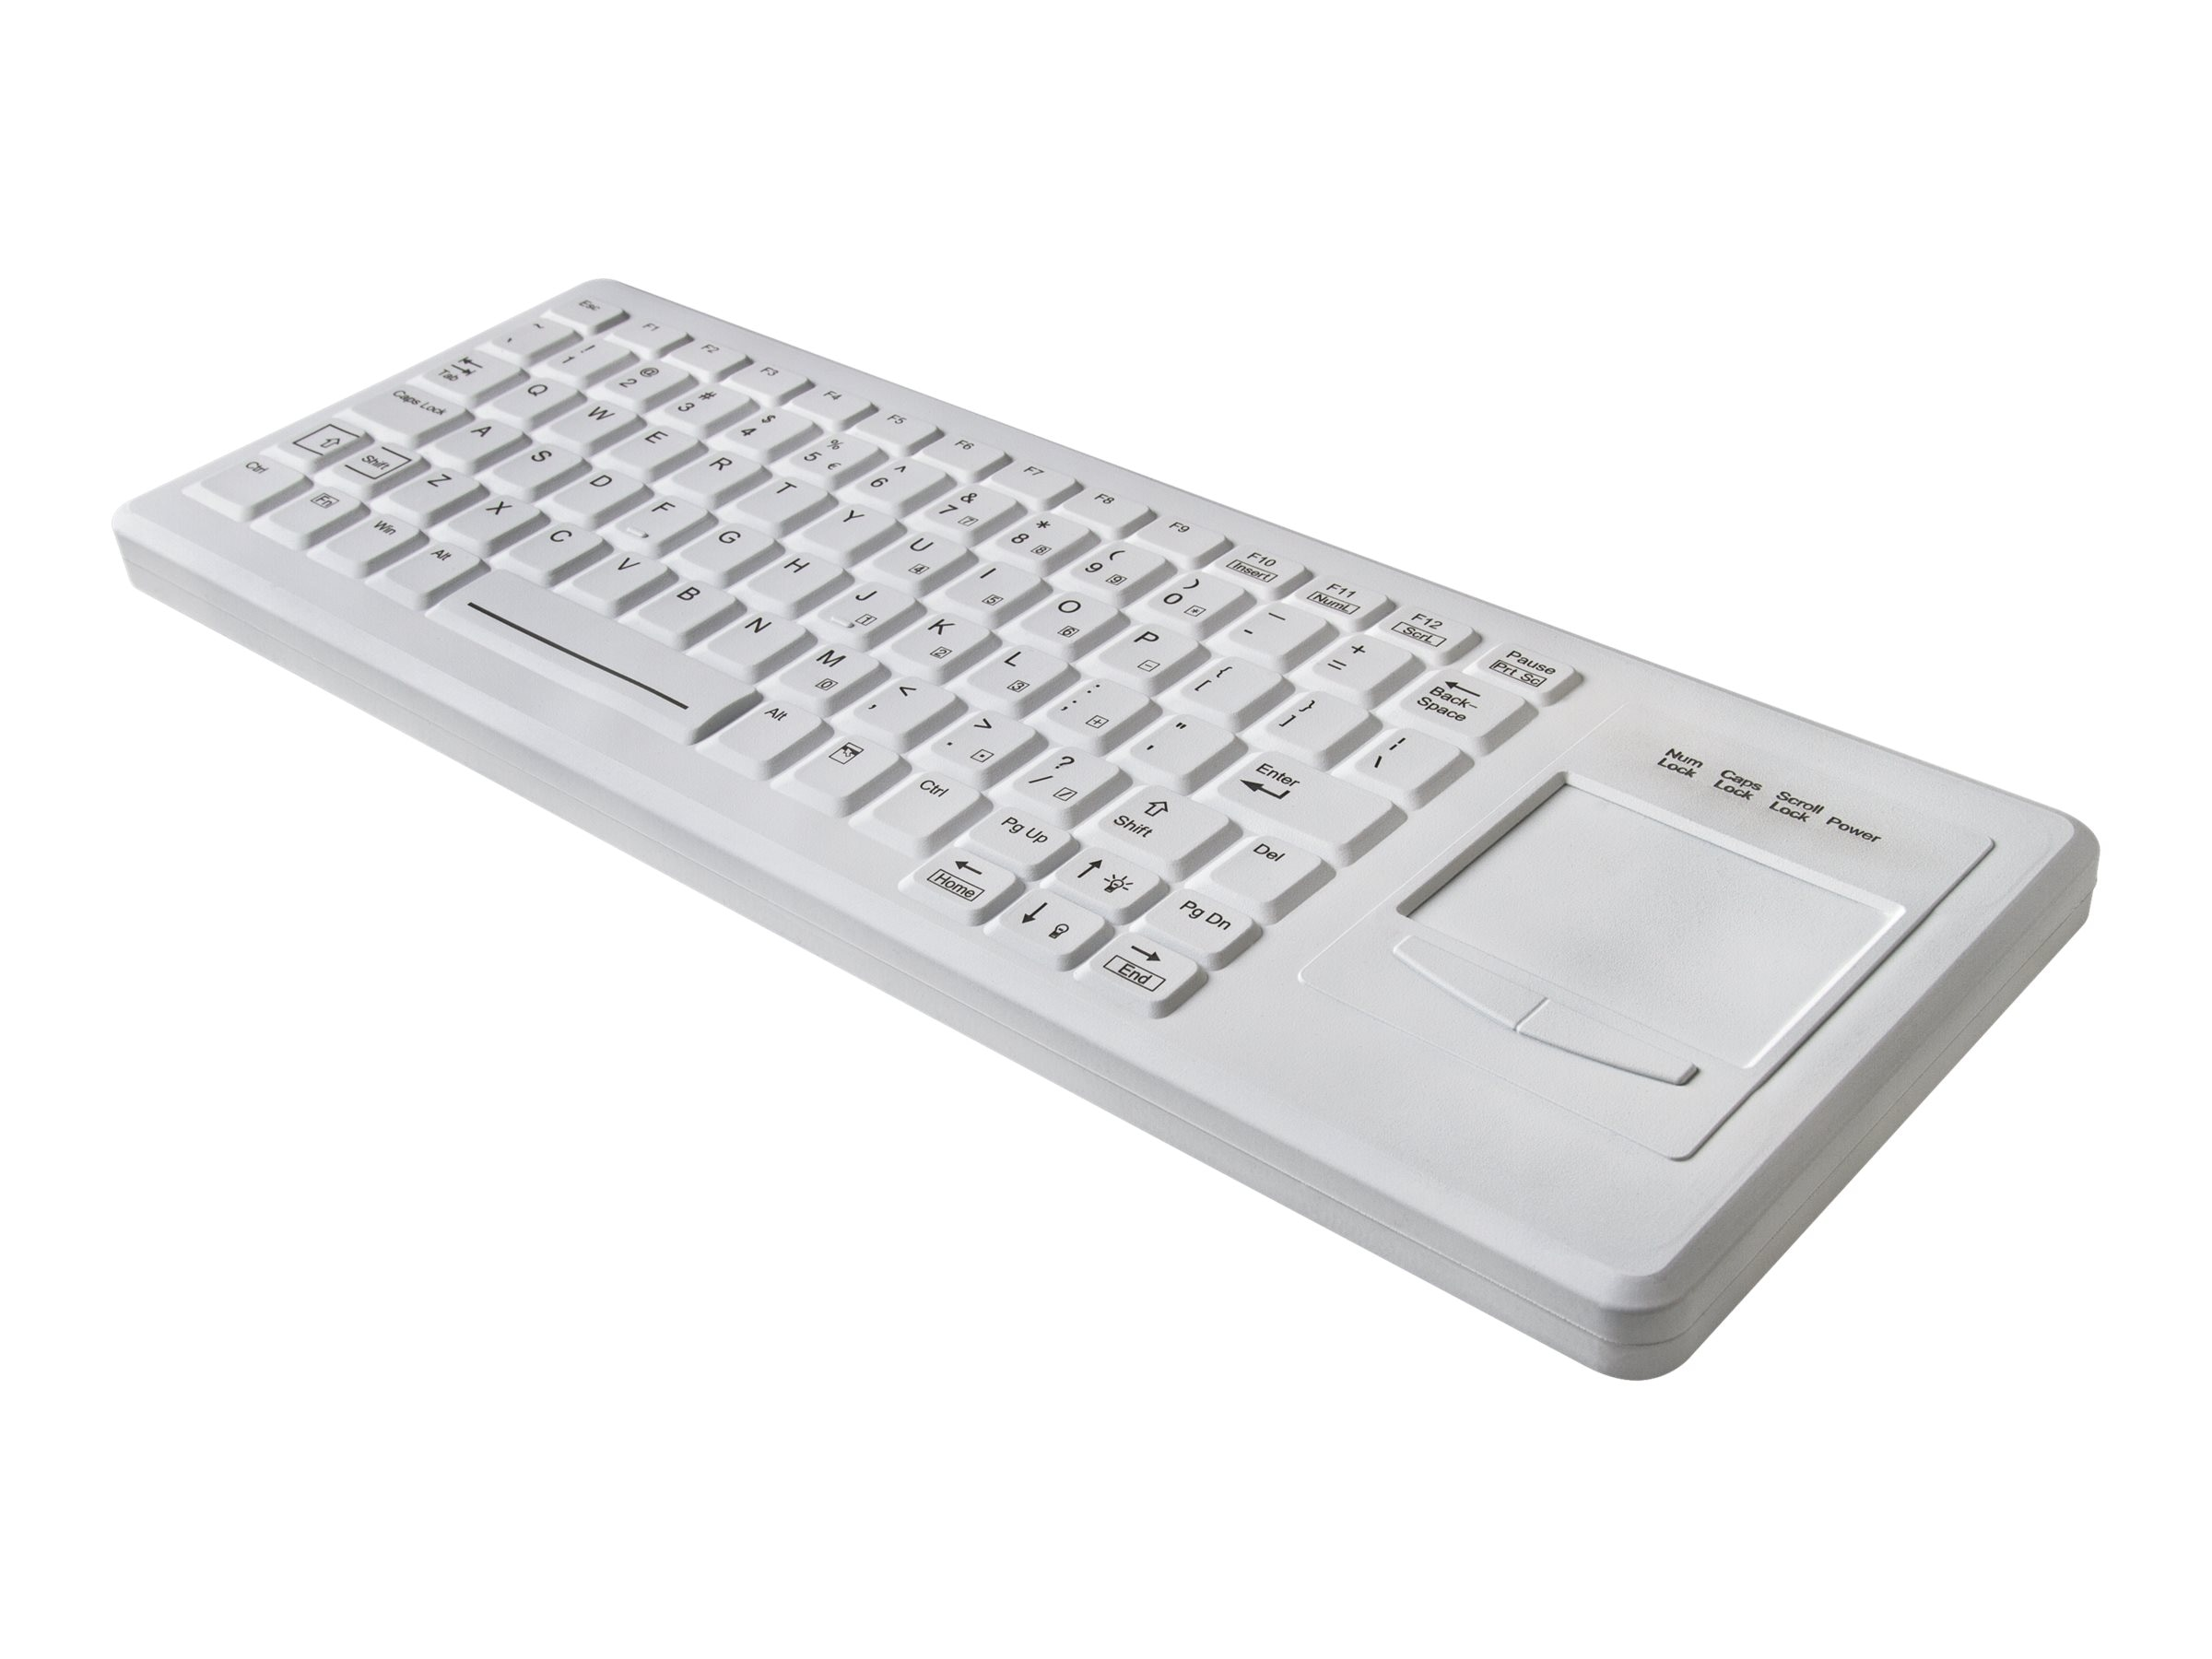 TG3 CK82S Medical Keyboard Right Touchpad 82 Keys Sealed IP68, USB, Black, White Backlighting